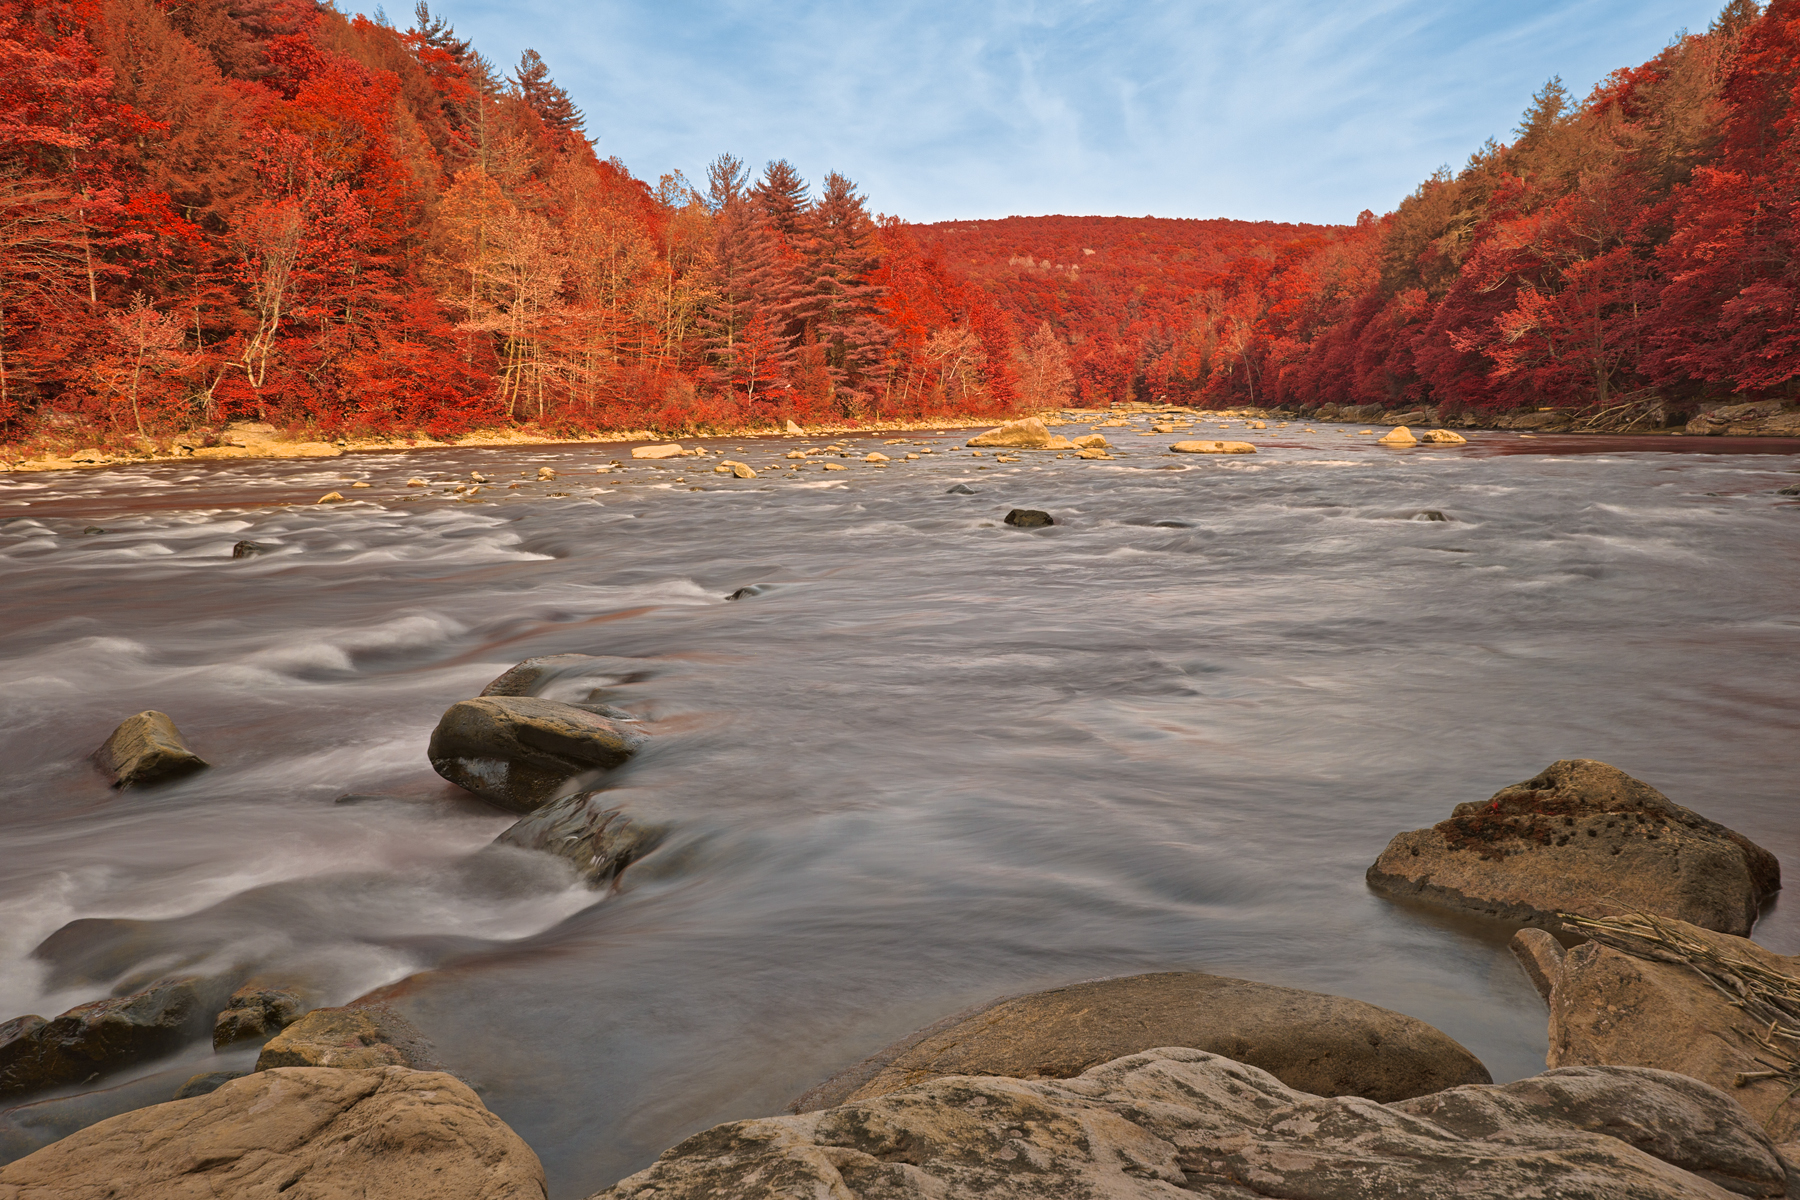 Ruby youghiogheny river - hdr photo